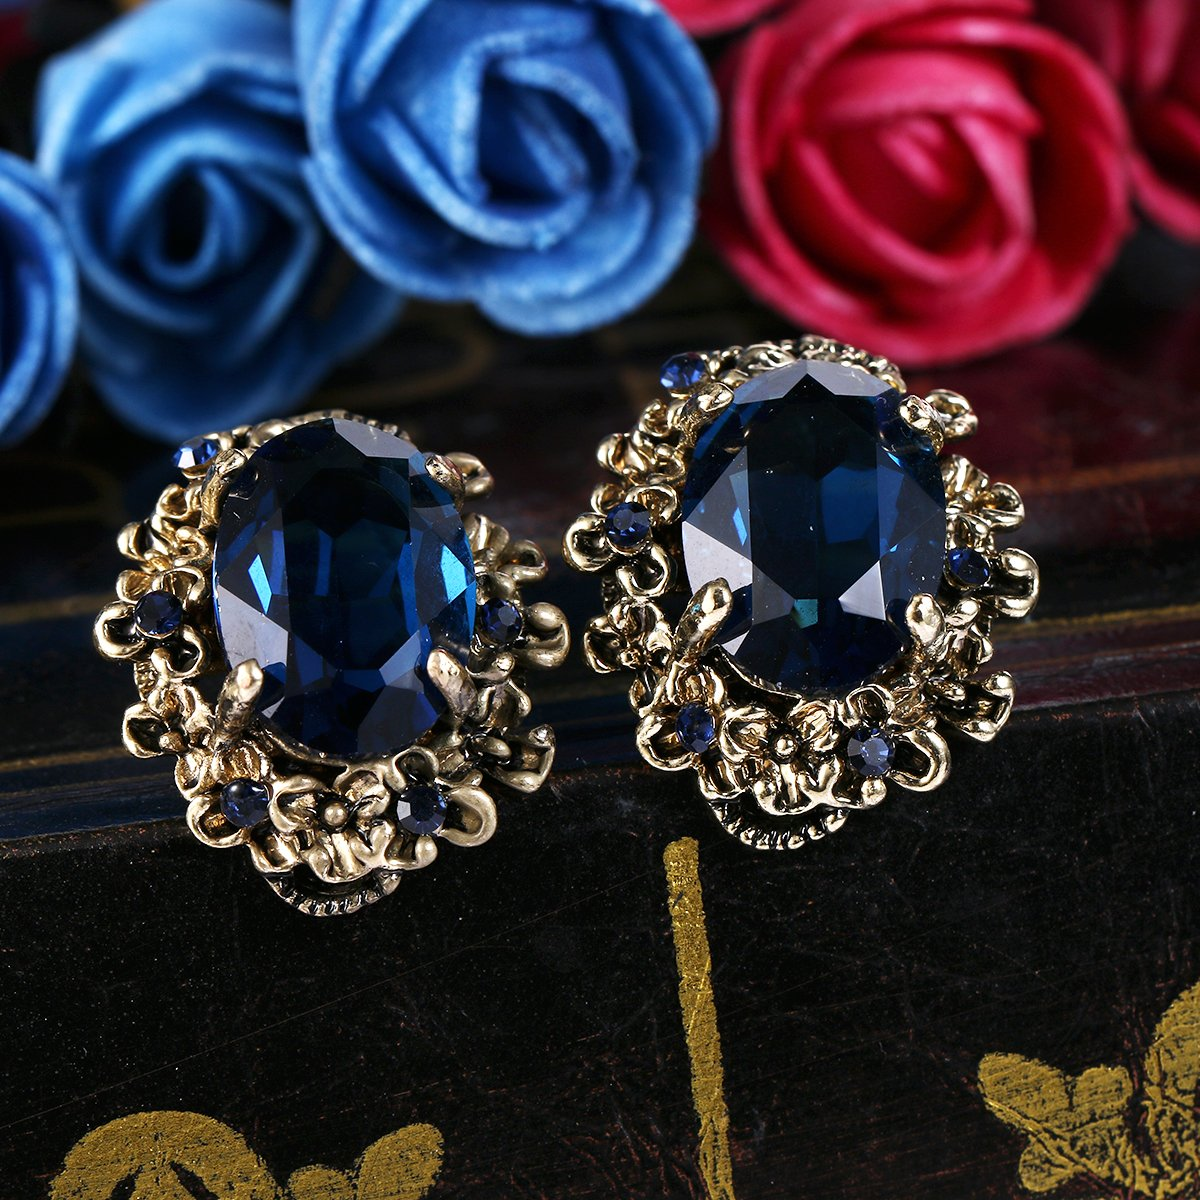 BriLove Antique-Gold-Toned Stud Earrings Women's Victorian Style Crystal Floral Scroll Cameo Inspired Oval Earrings Sapphire Color by BriLove (Image #3)